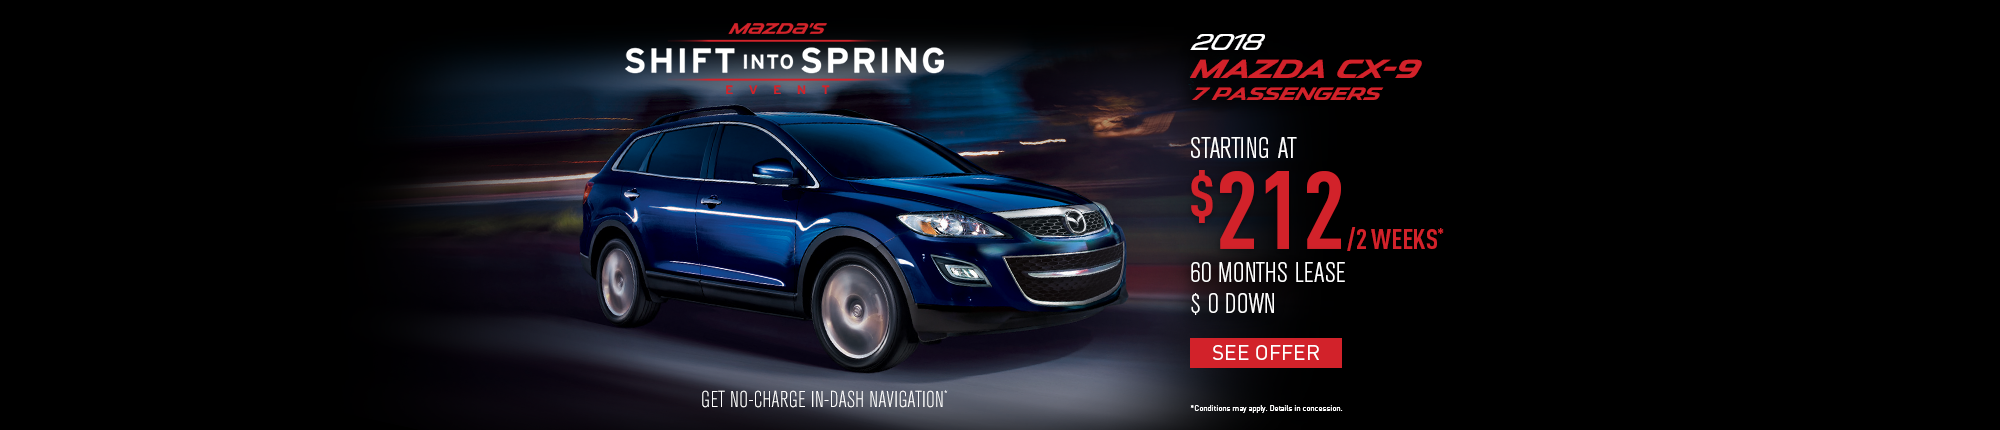 Shift into Spring - CX-9